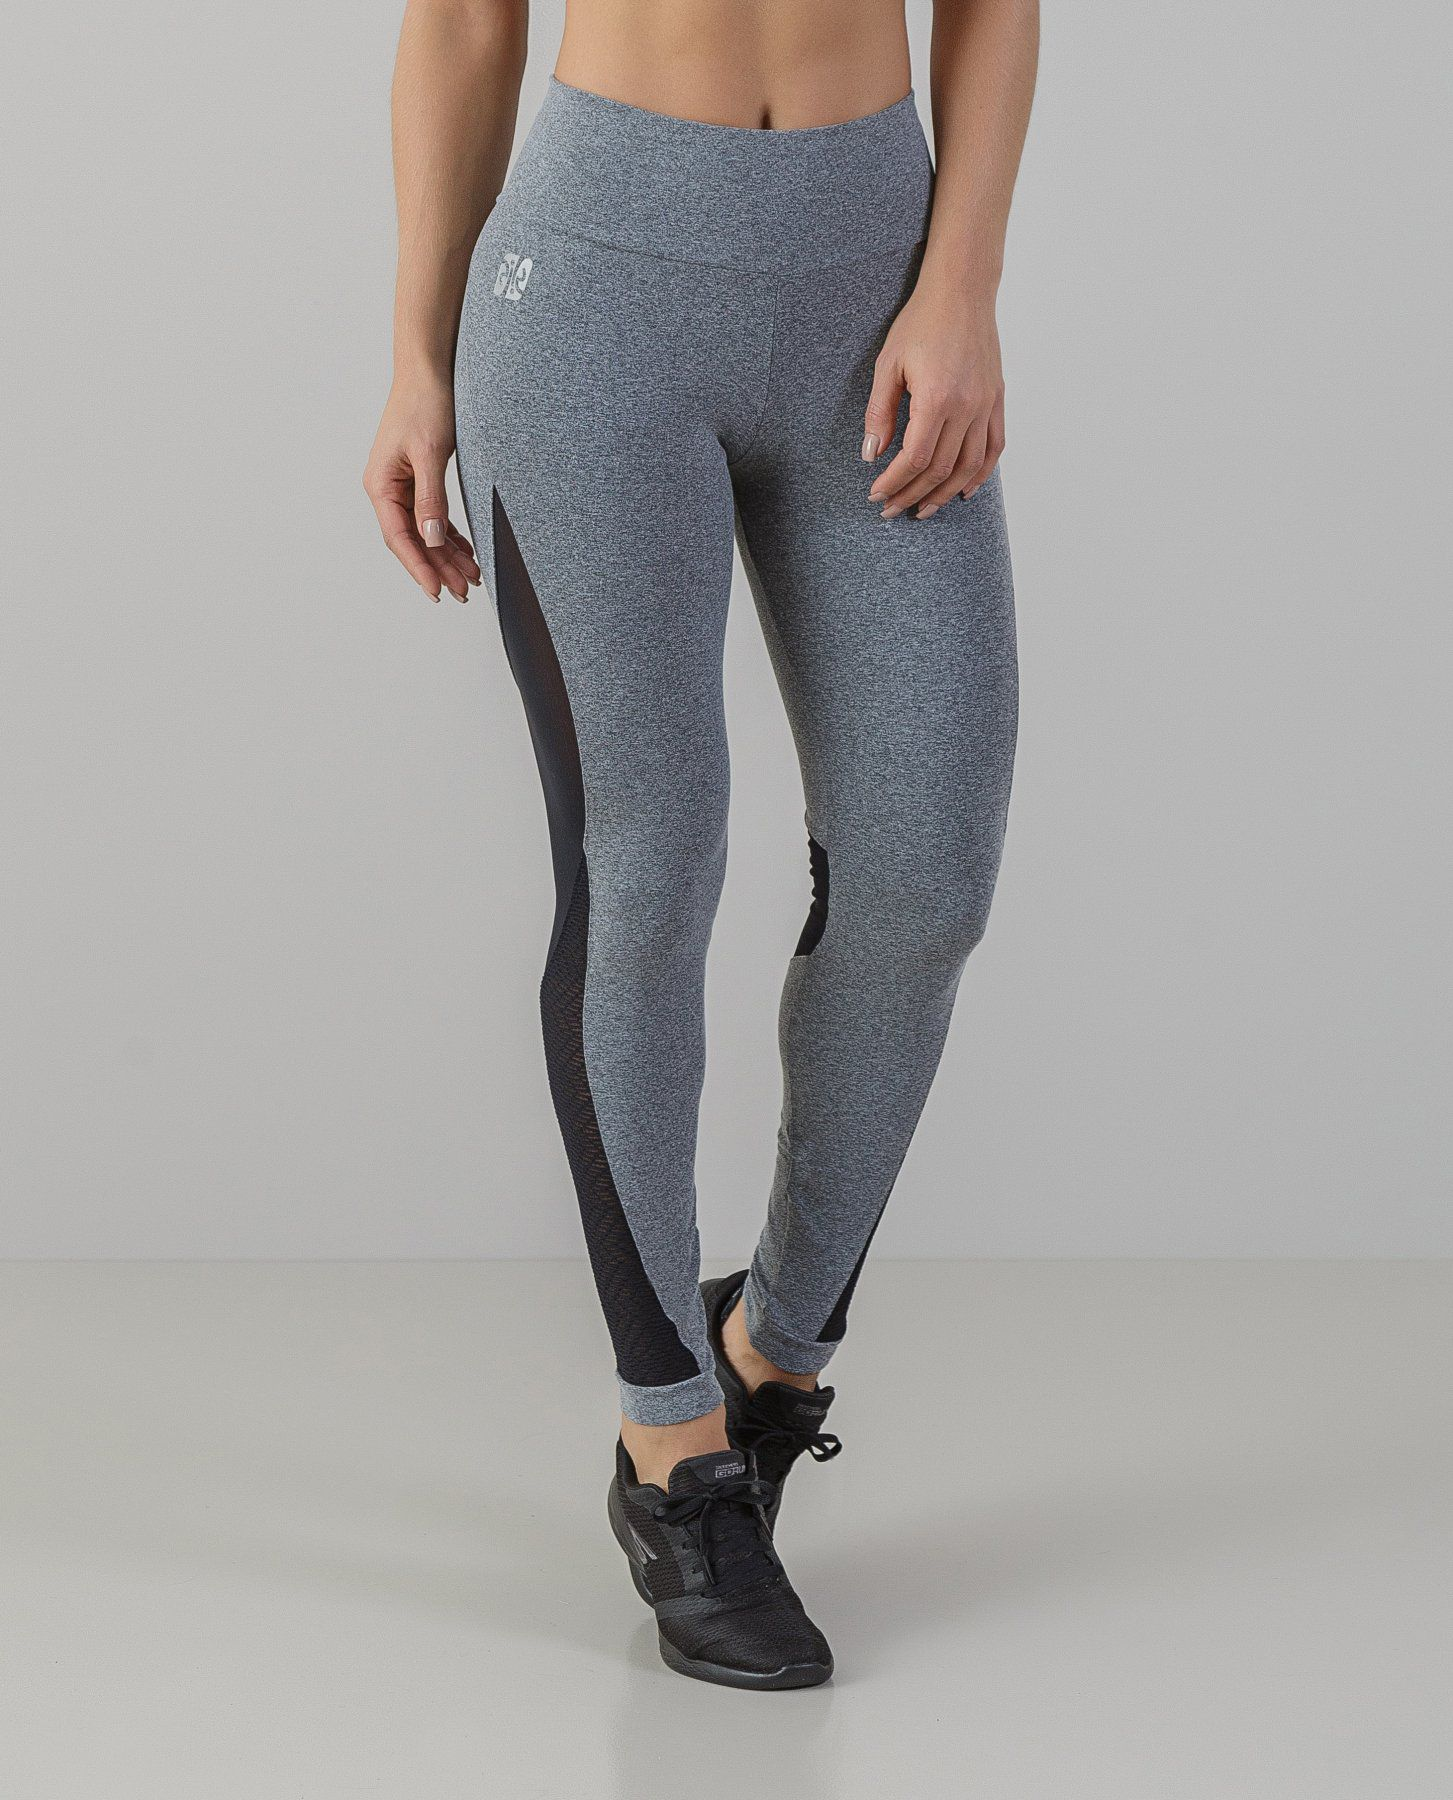 Legging Supplex Sport com Transparência